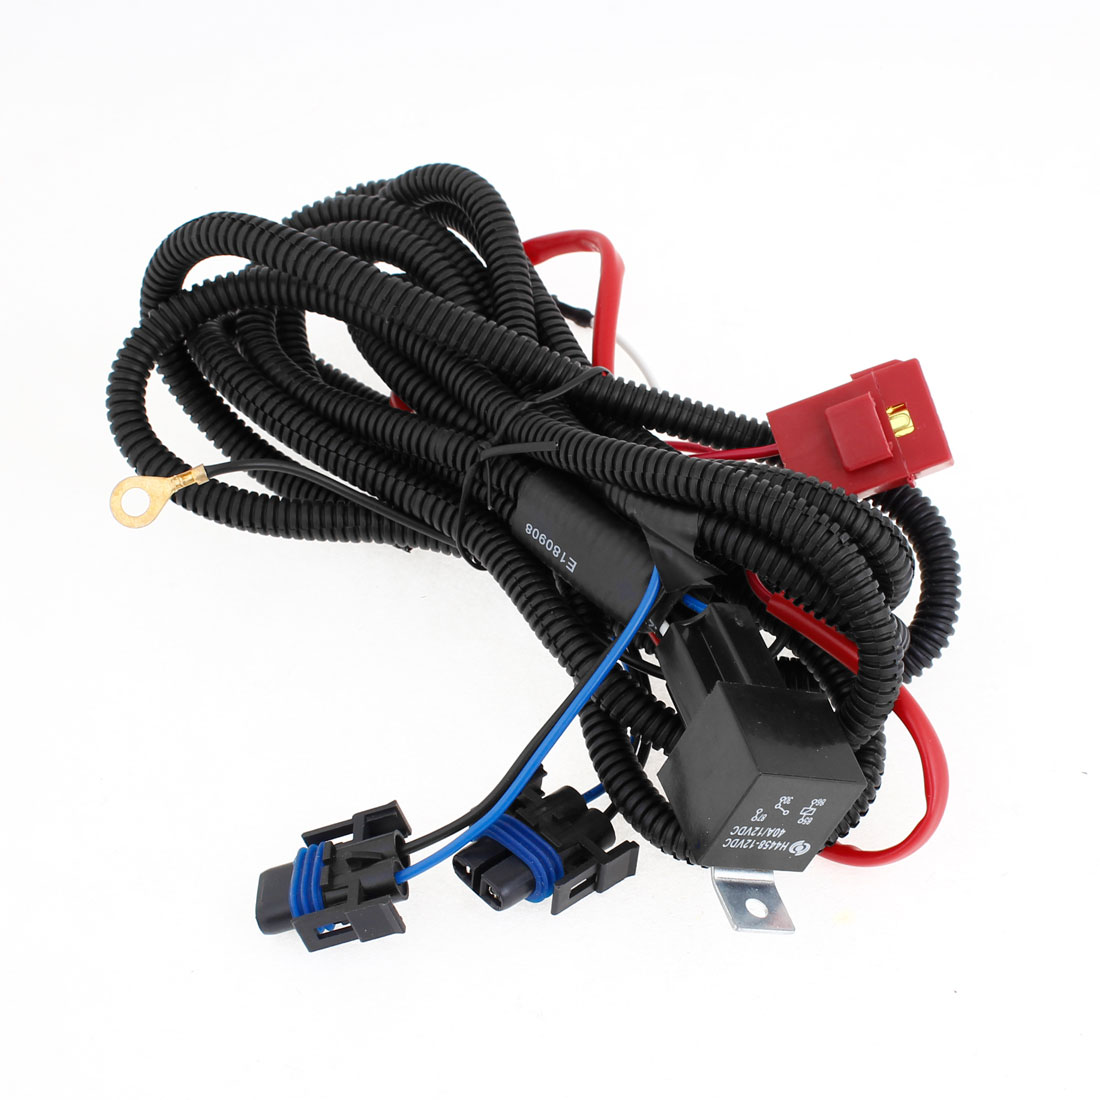 H11 HID Headlight Fog Light Relay Wiring Harness Wire for Auto - Walmart.com